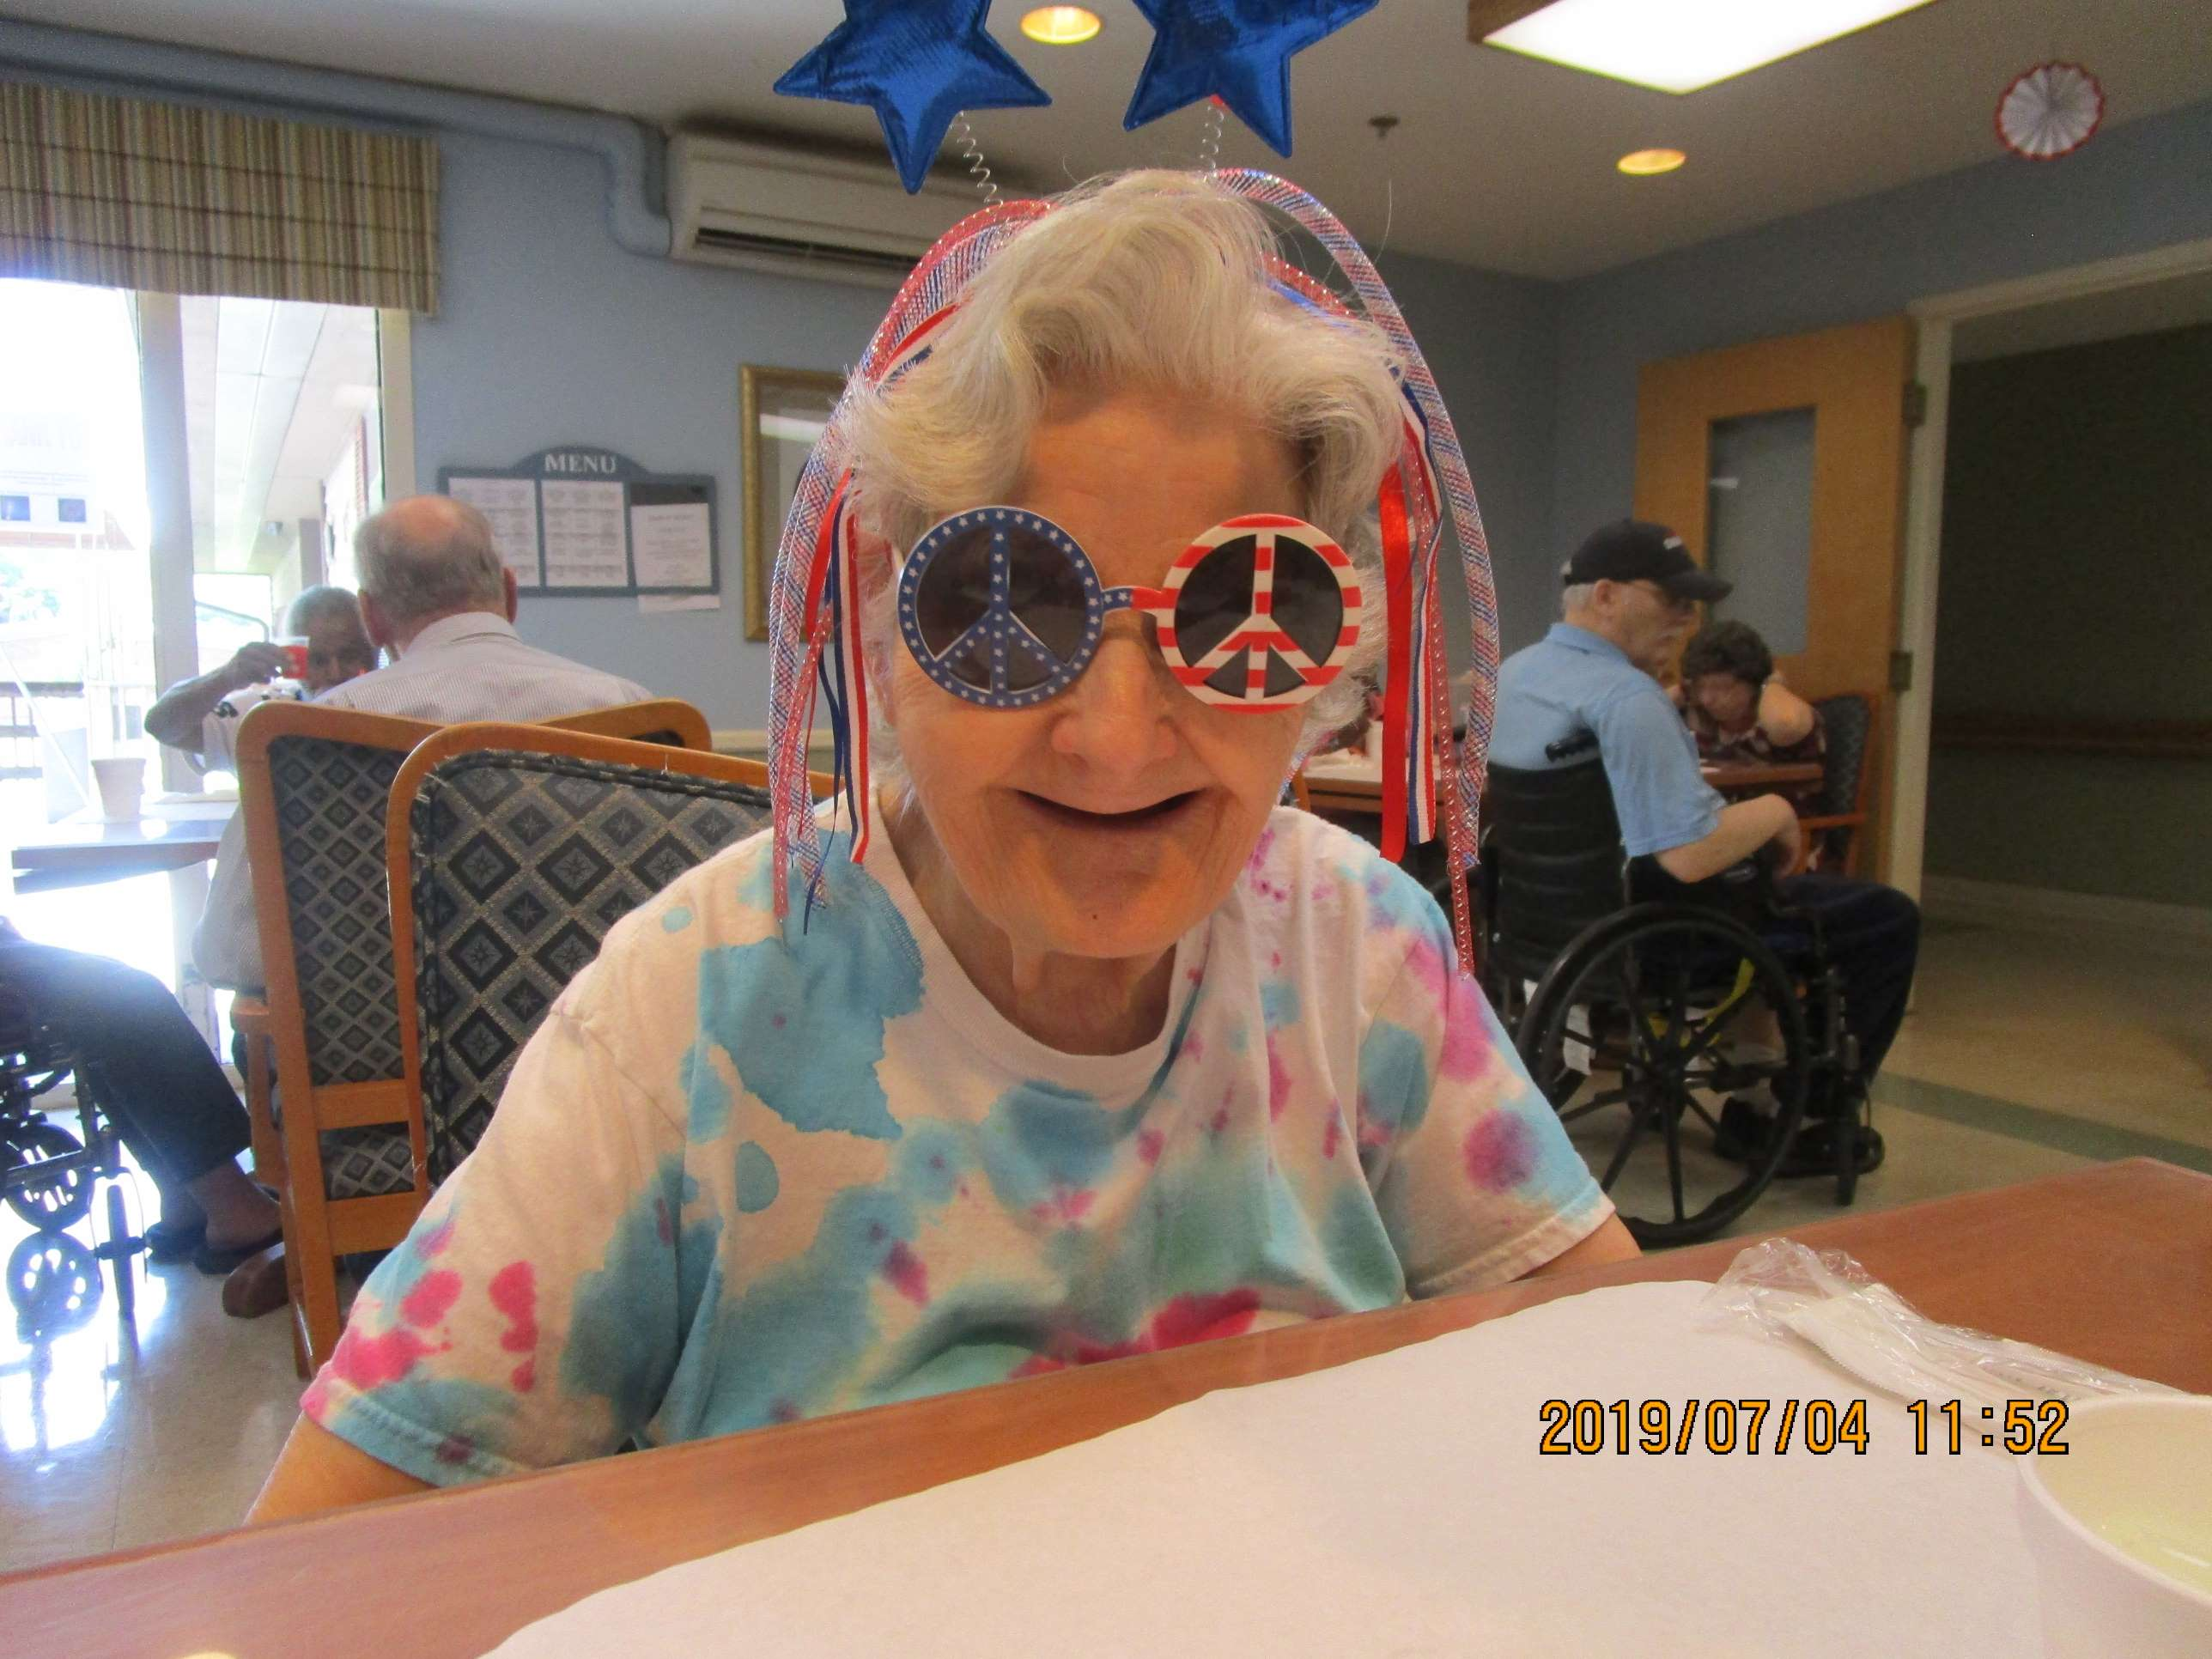 crystal lake rehab celebrate the 4th breakfast sunglasses american